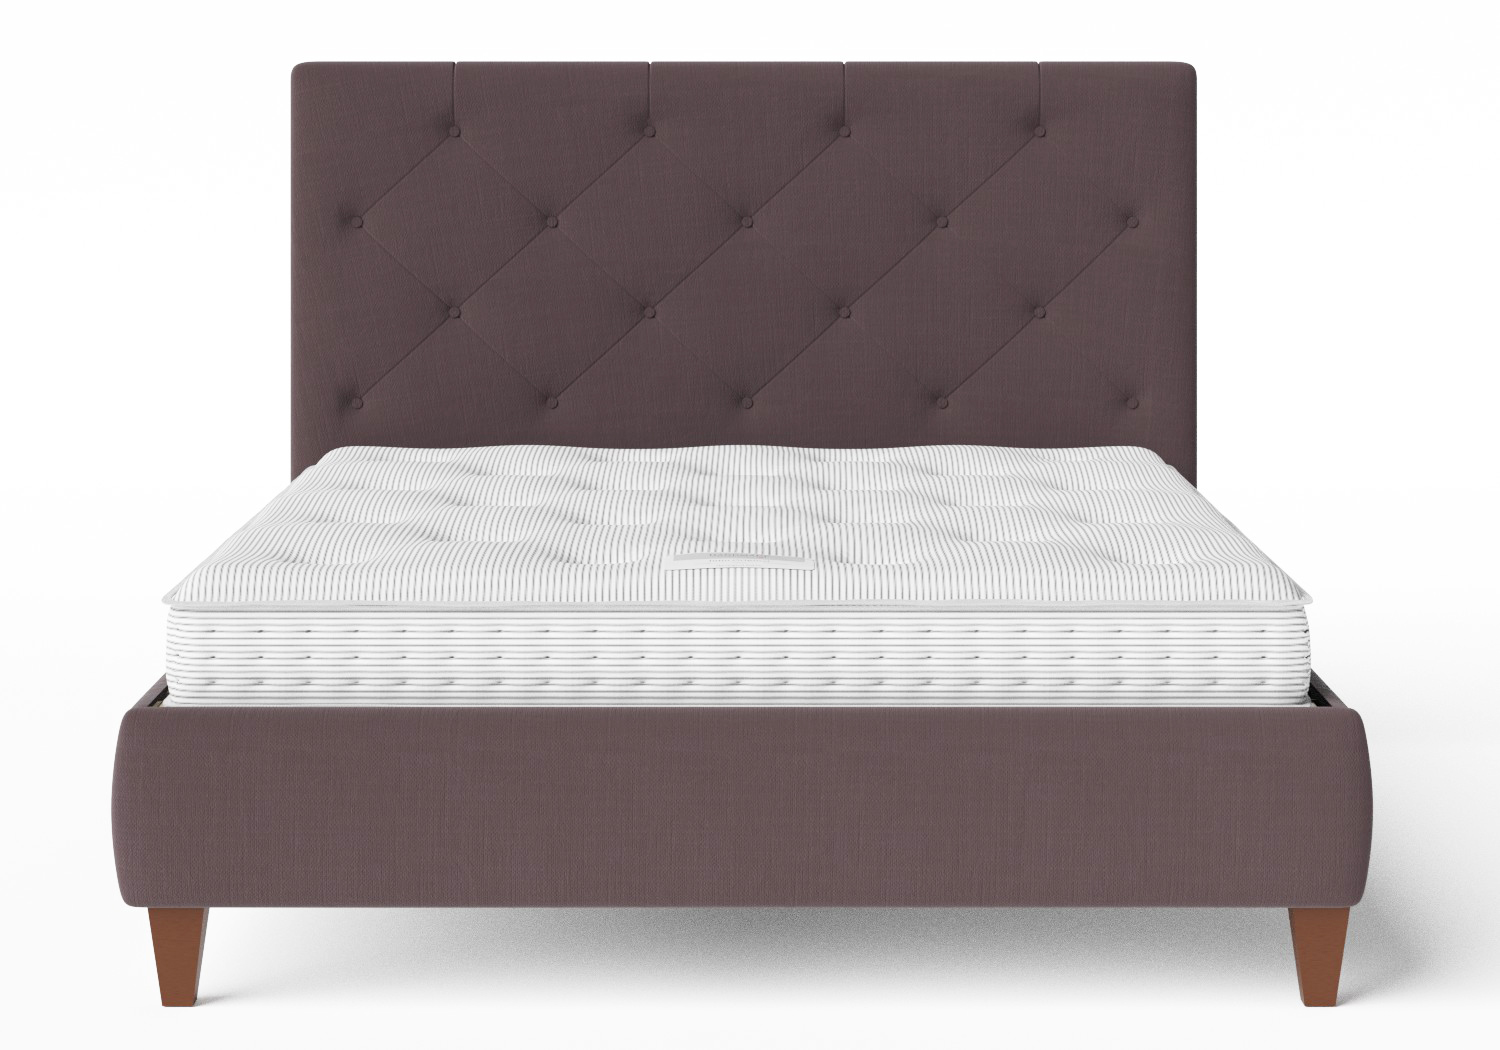 Yushan Upholstered Bed in Aubergine fabric with buttoning shown with Juno 1 mattress